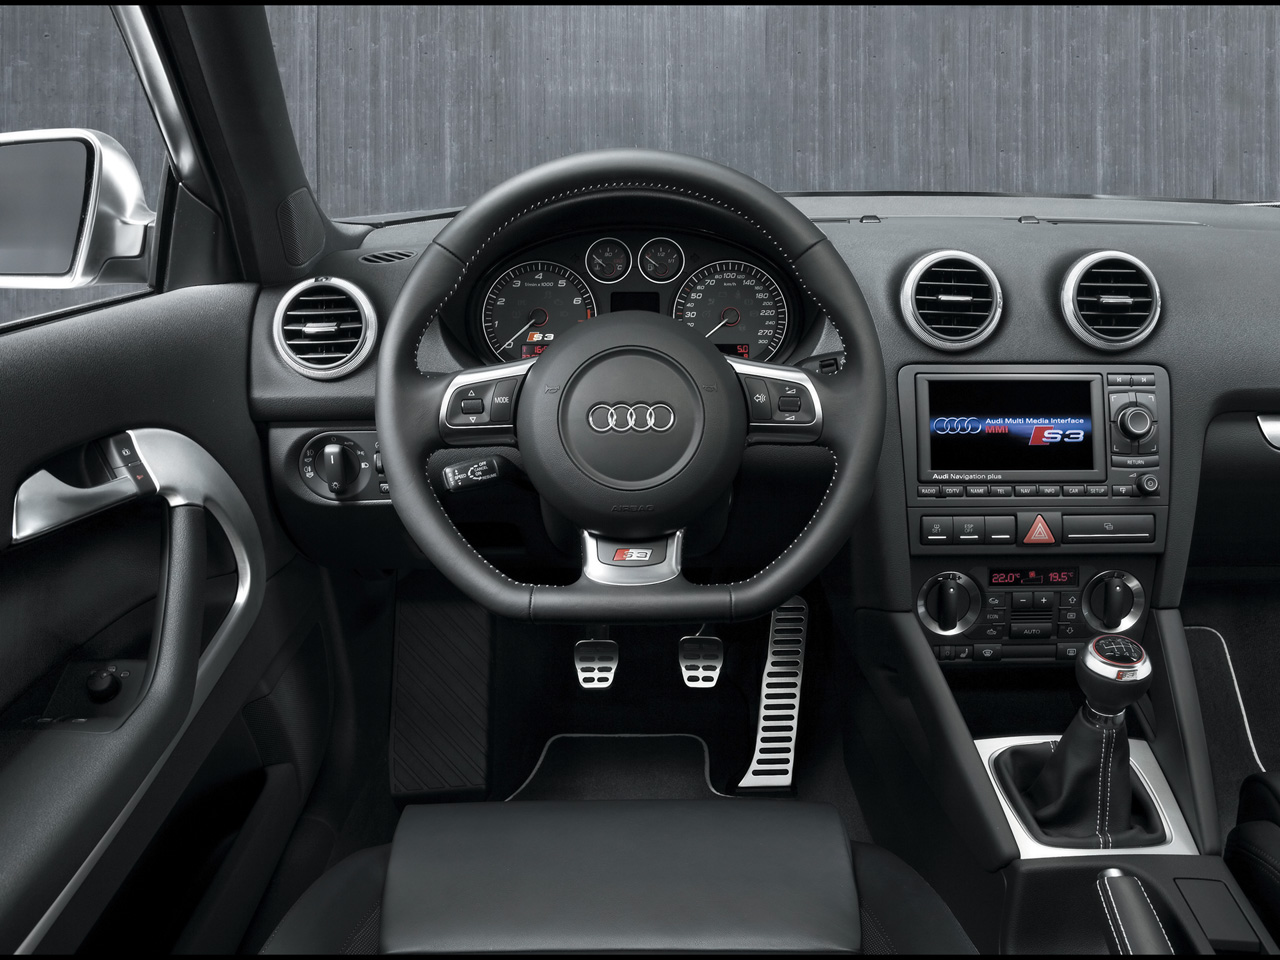 Wallpapers 187 audi s3 wallpapers